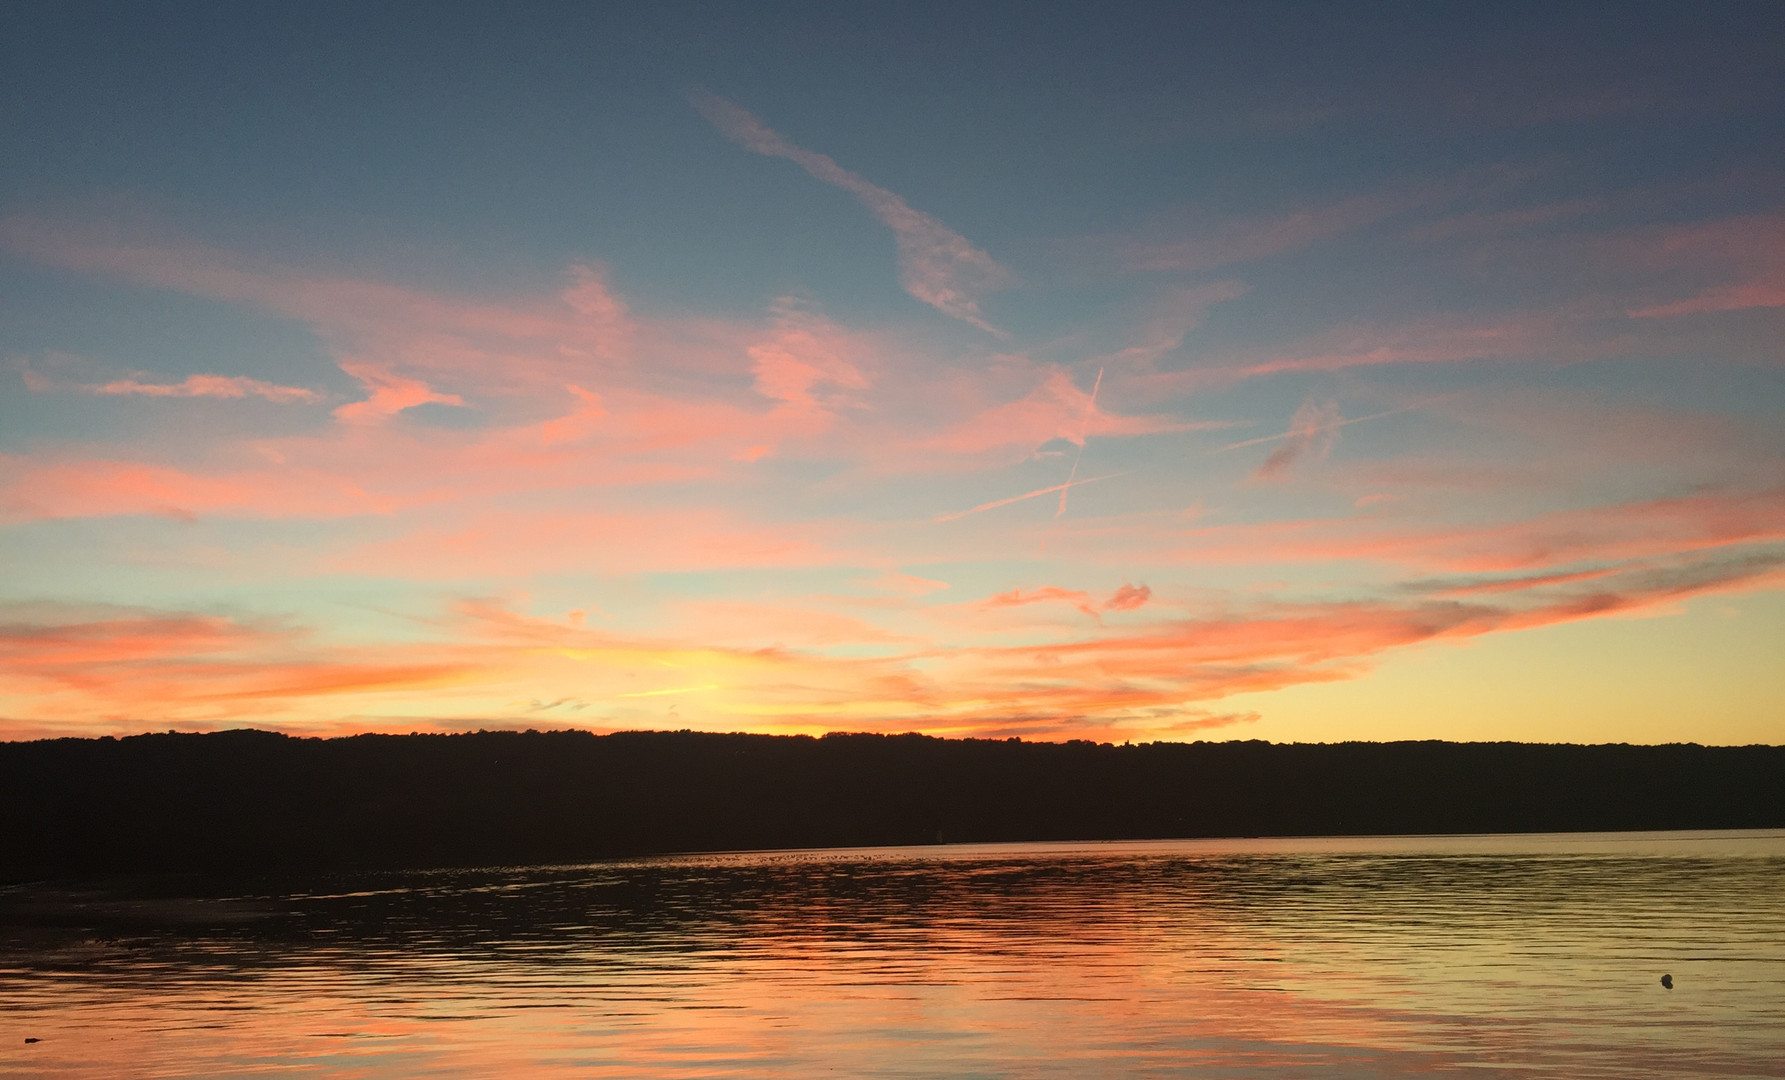 Sunset over Cayuga Lake, Ithaca, New York